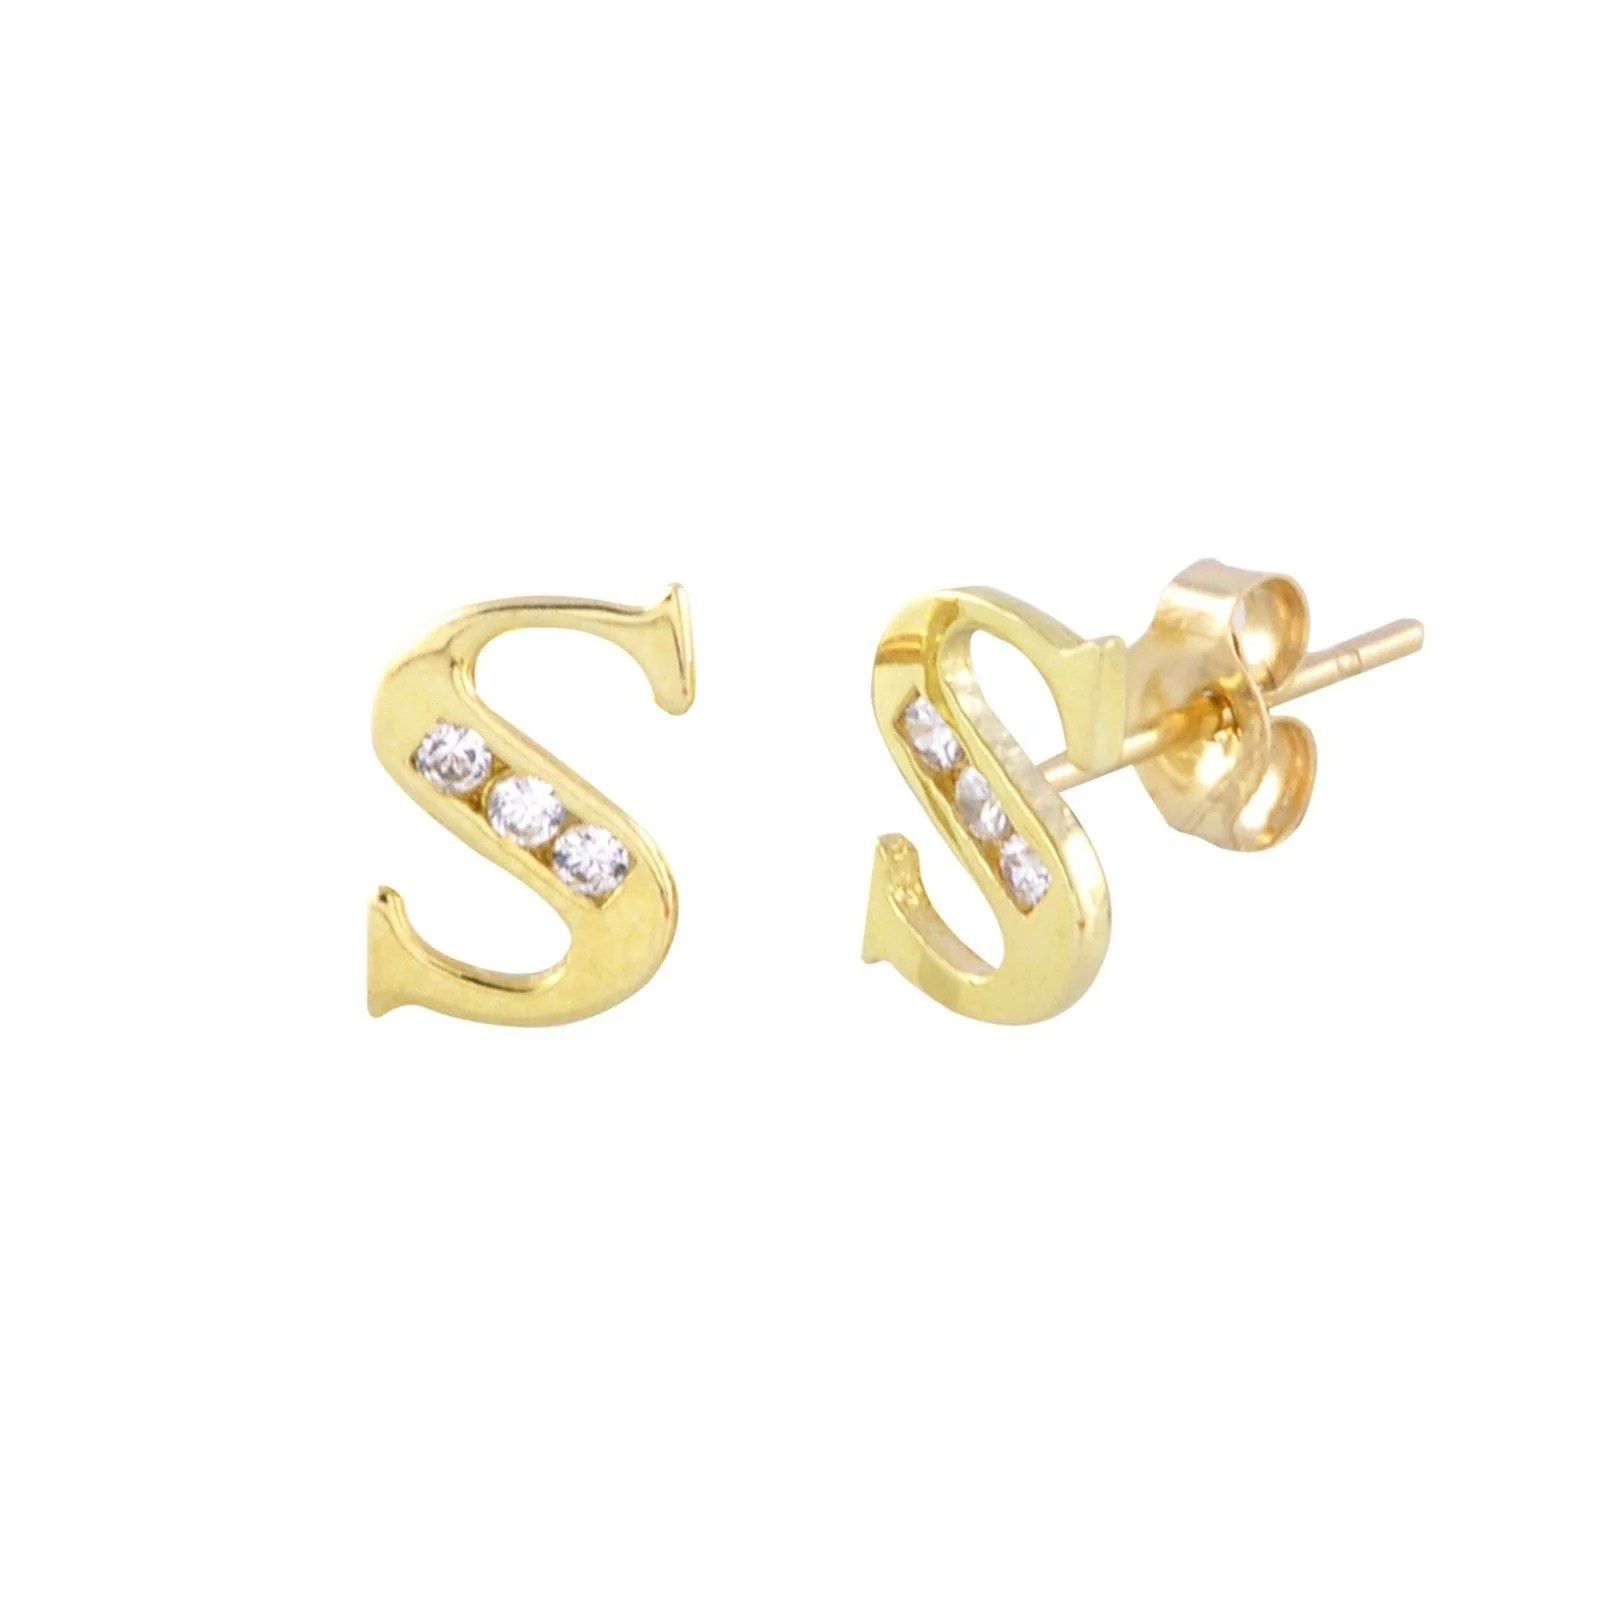 Gold S 10k Initial Earrings Jewelryland